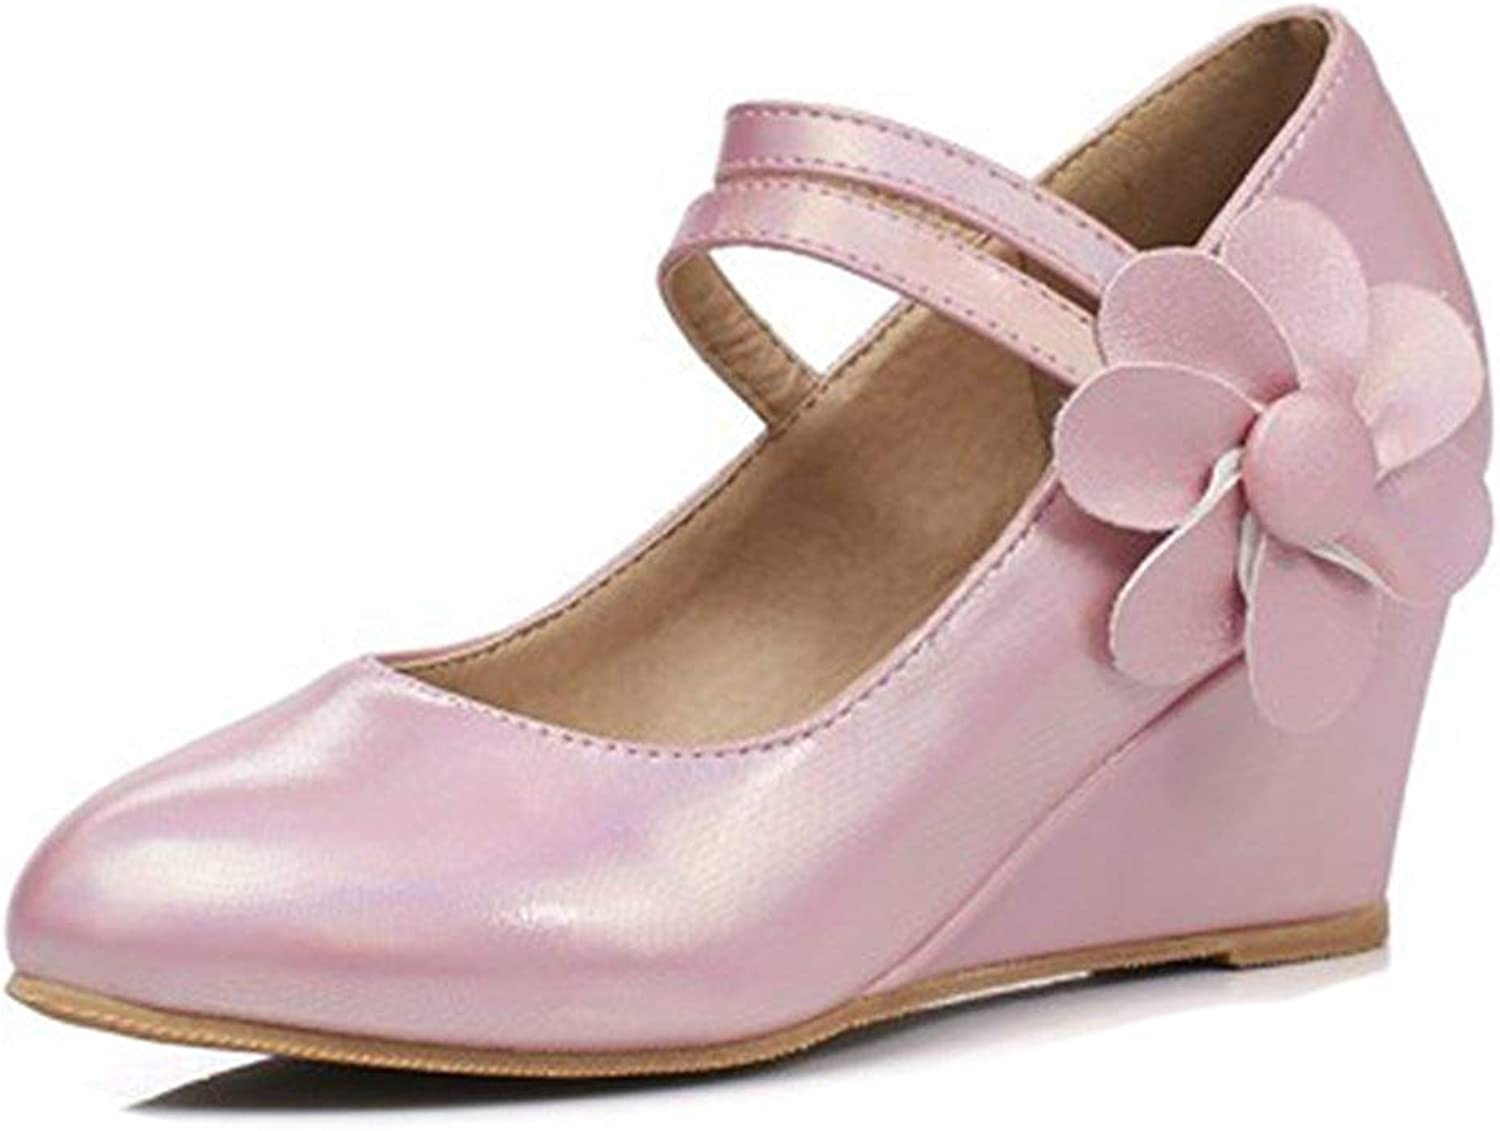 Unm Women's Flower Hook and Loop Dressy Low Cut Pointed Toe Medium Heel Wedge Pumps shoes with Ankle Strap